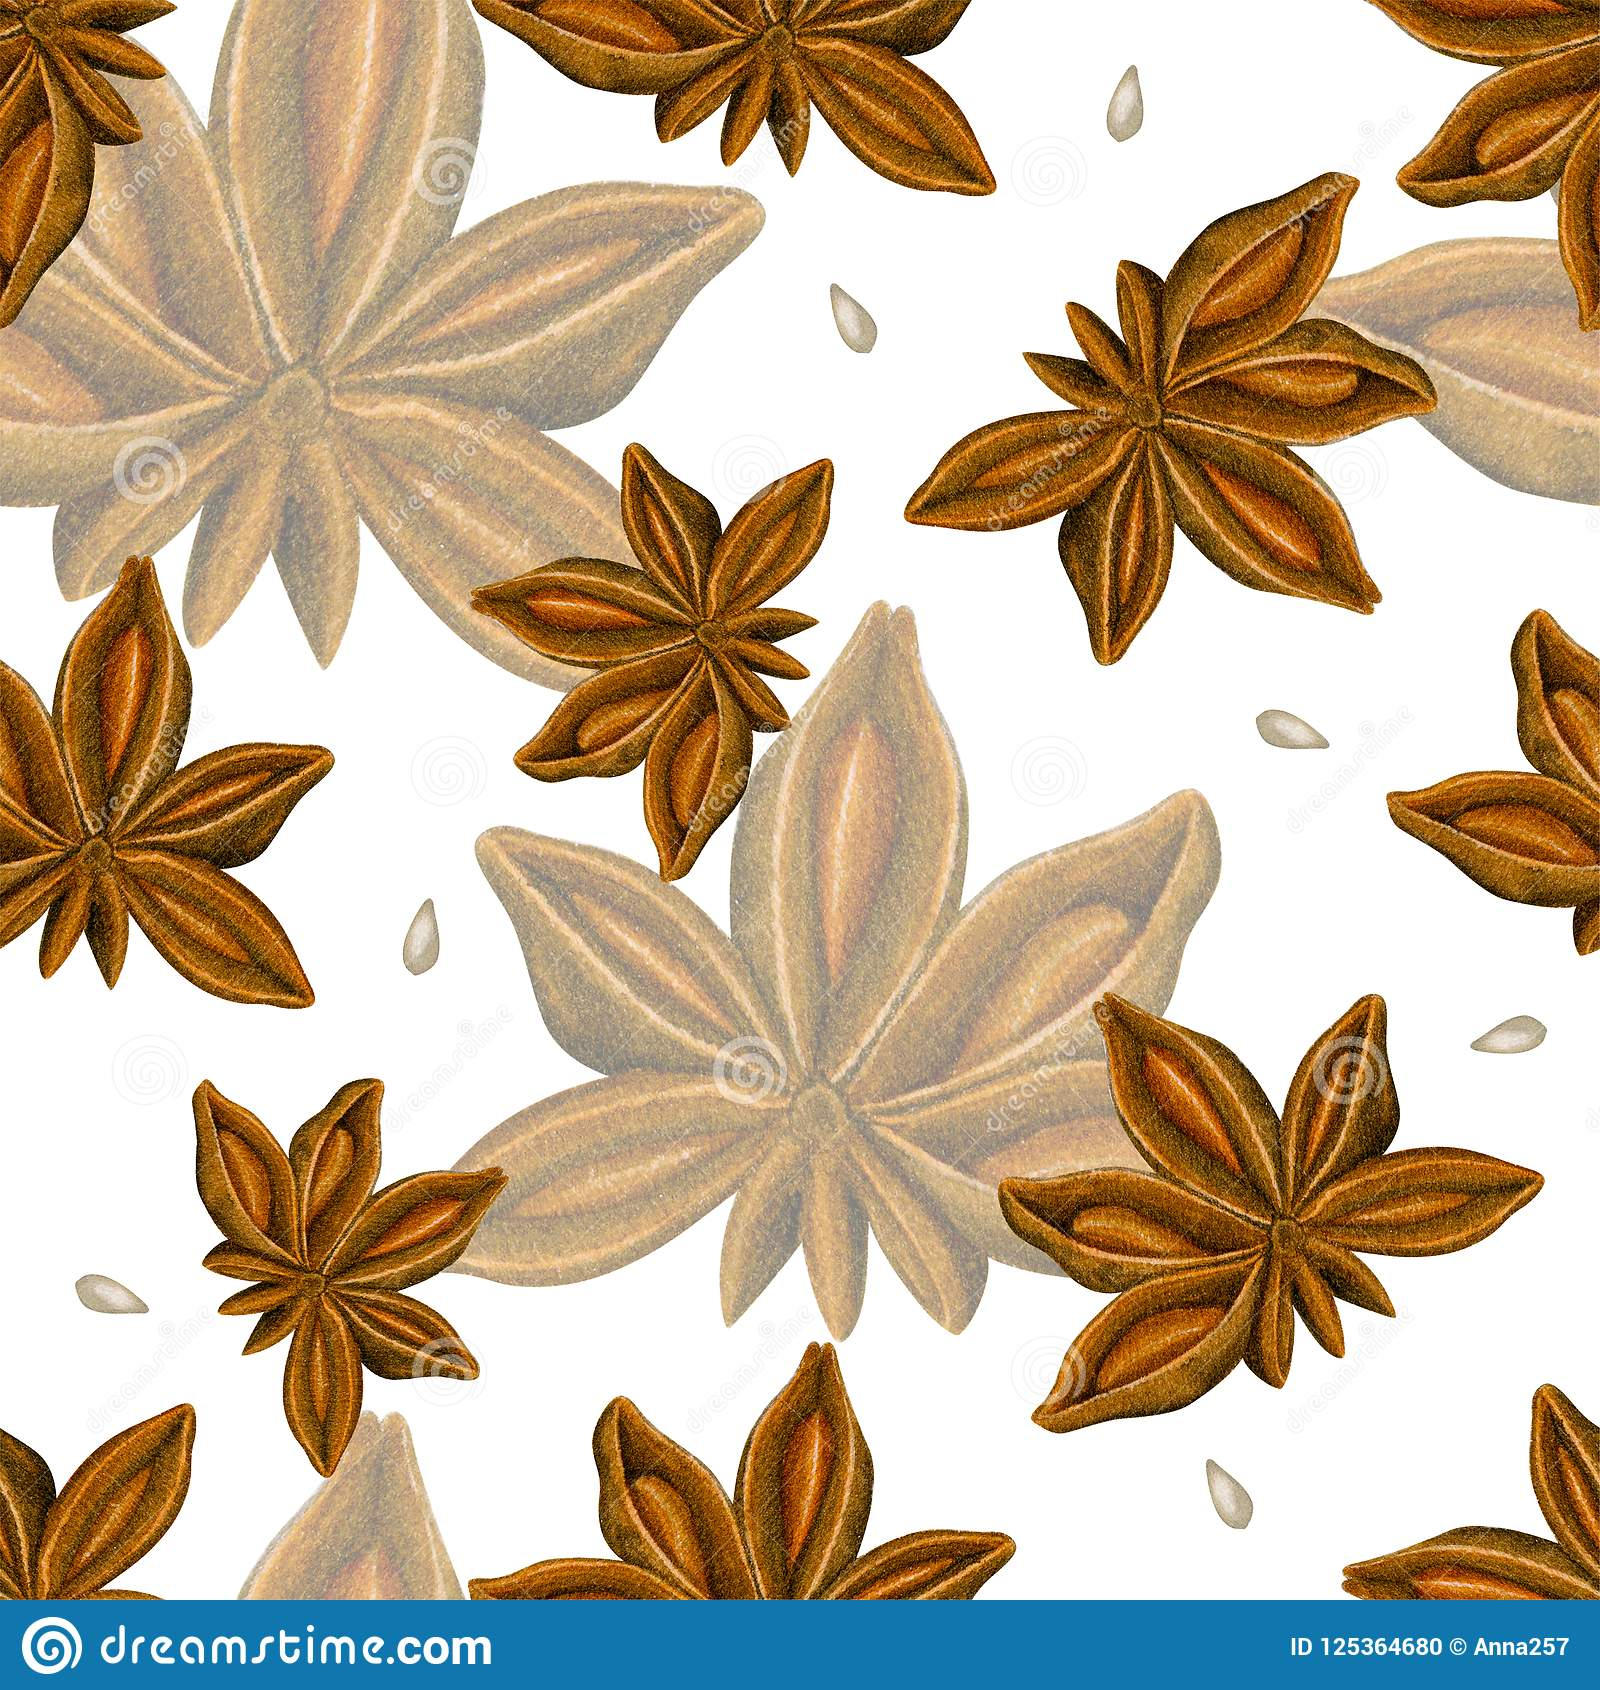 Watercolor seamless pattern with anise. Hand drawn botanic design. Template for a banner, poster, notebook, invitation